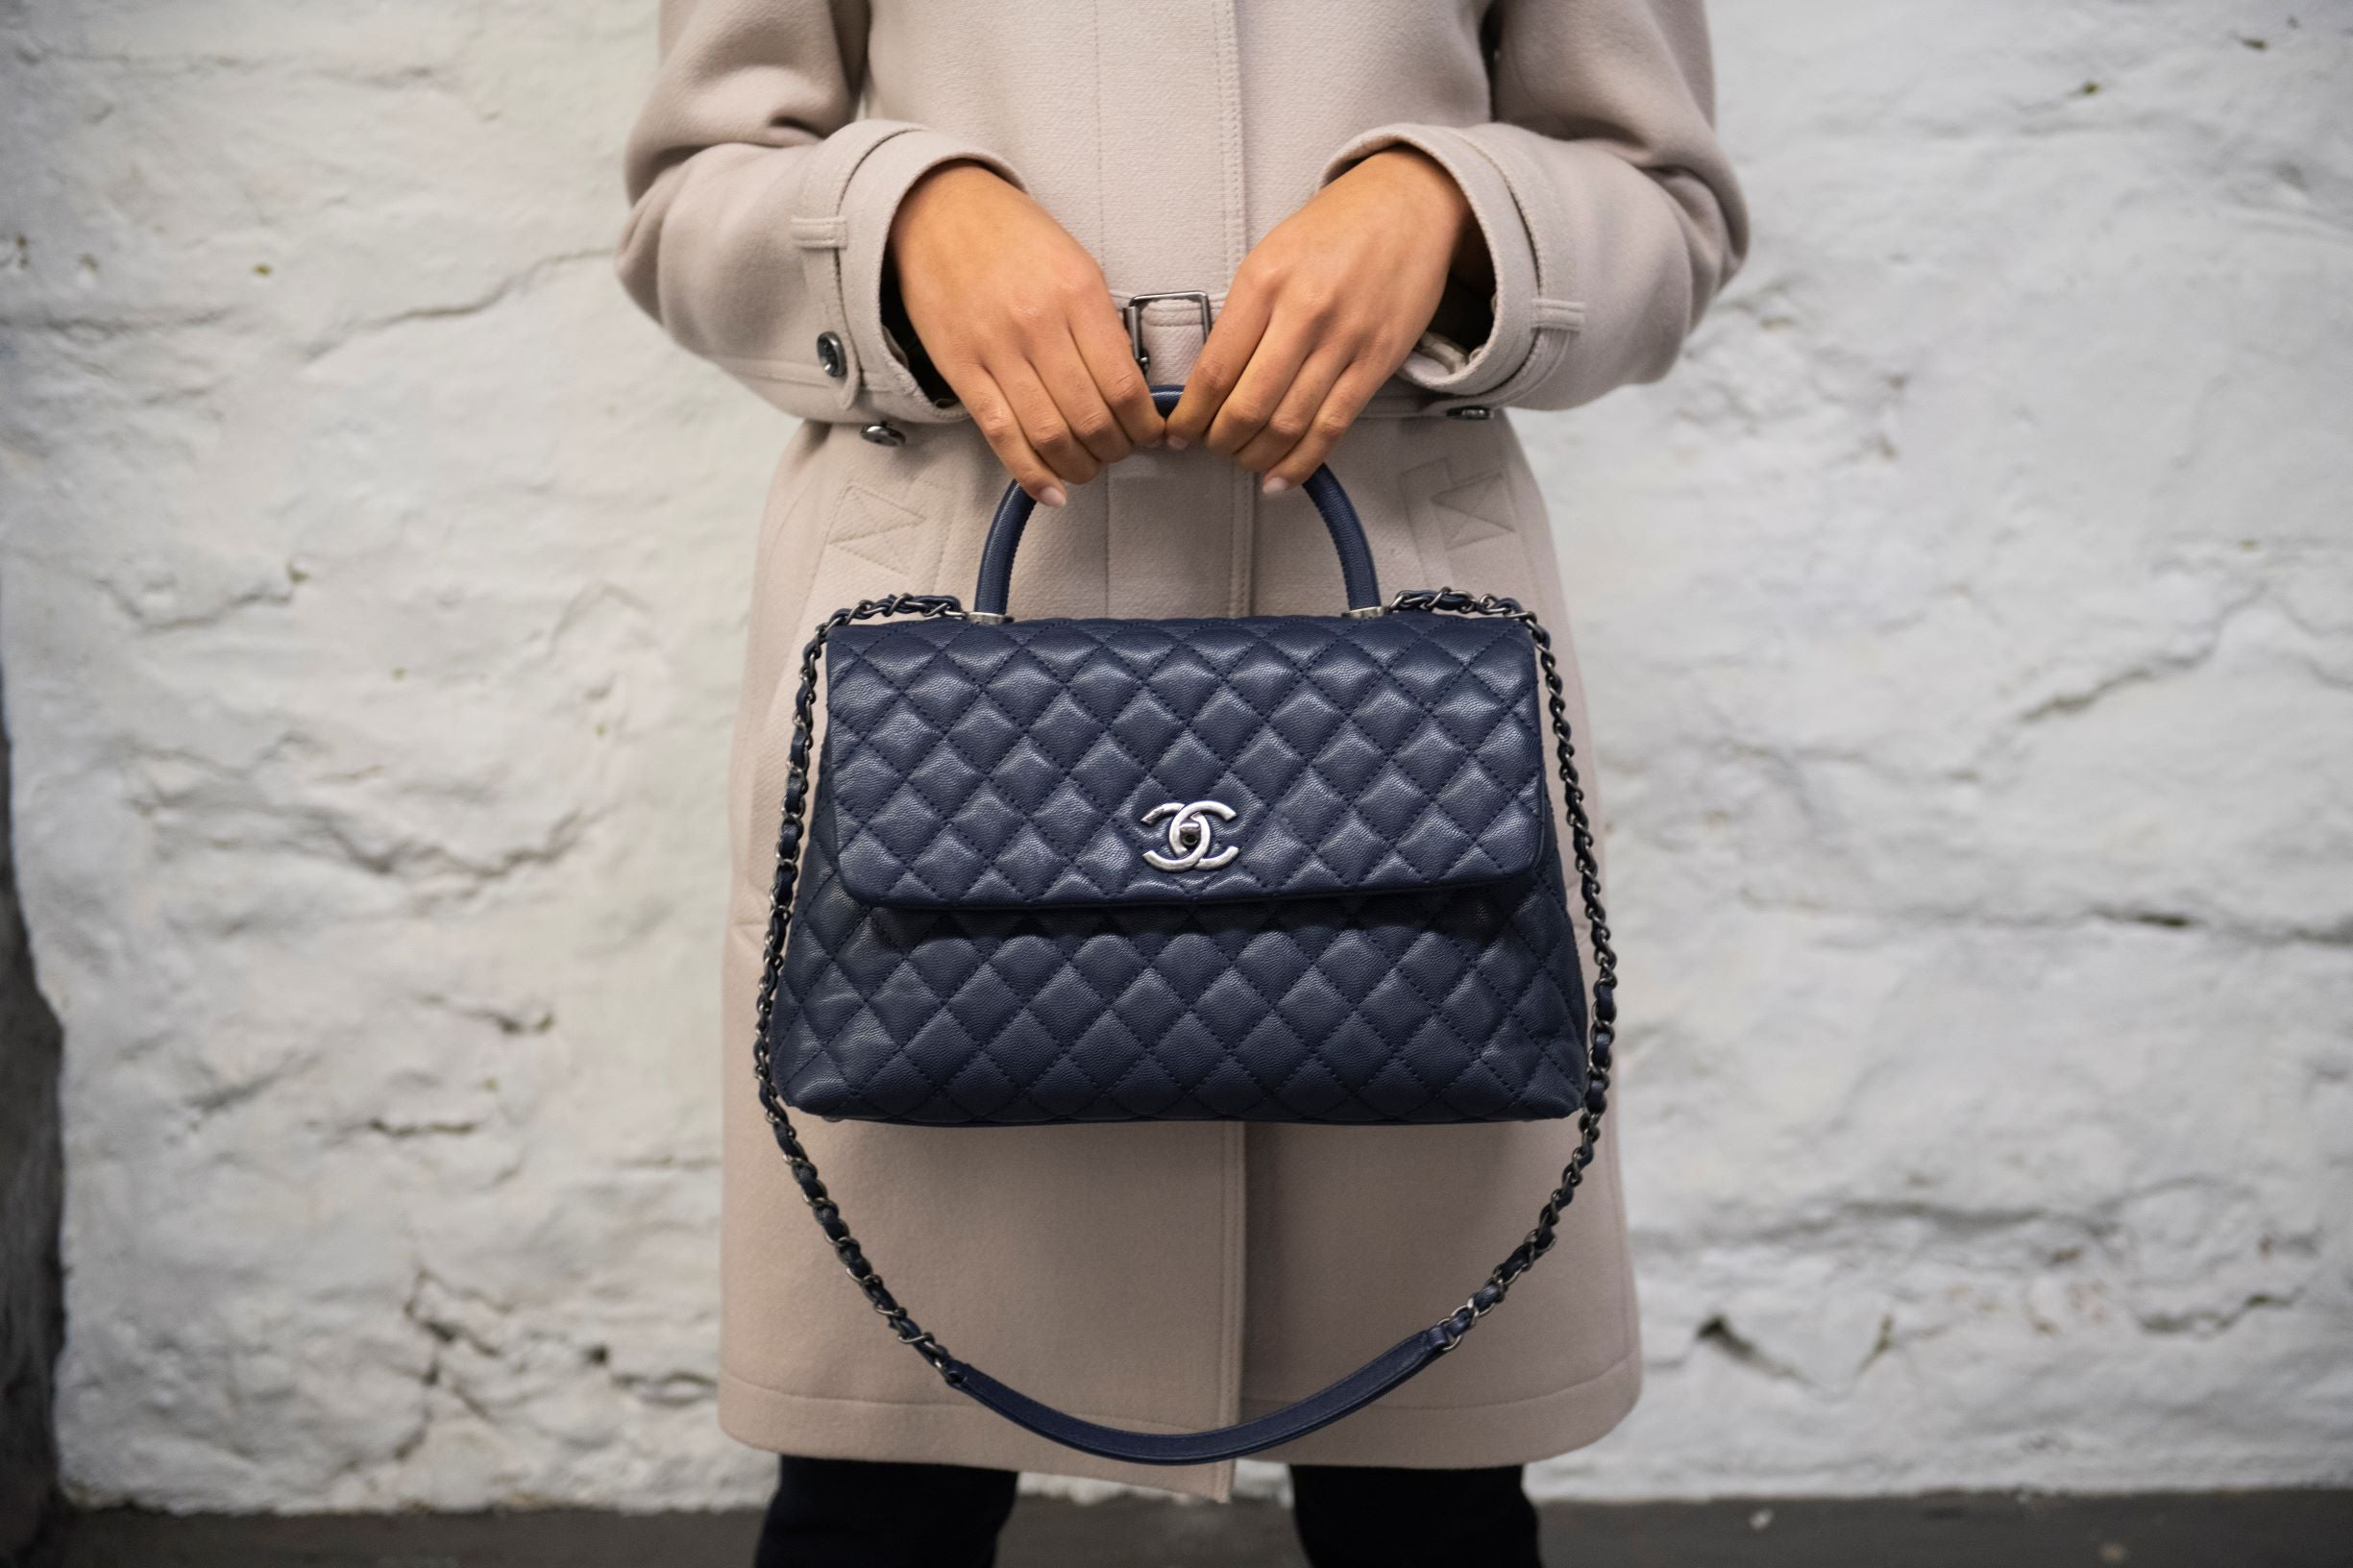 Classic Chanel Flap Bags & other authentic designer handbags